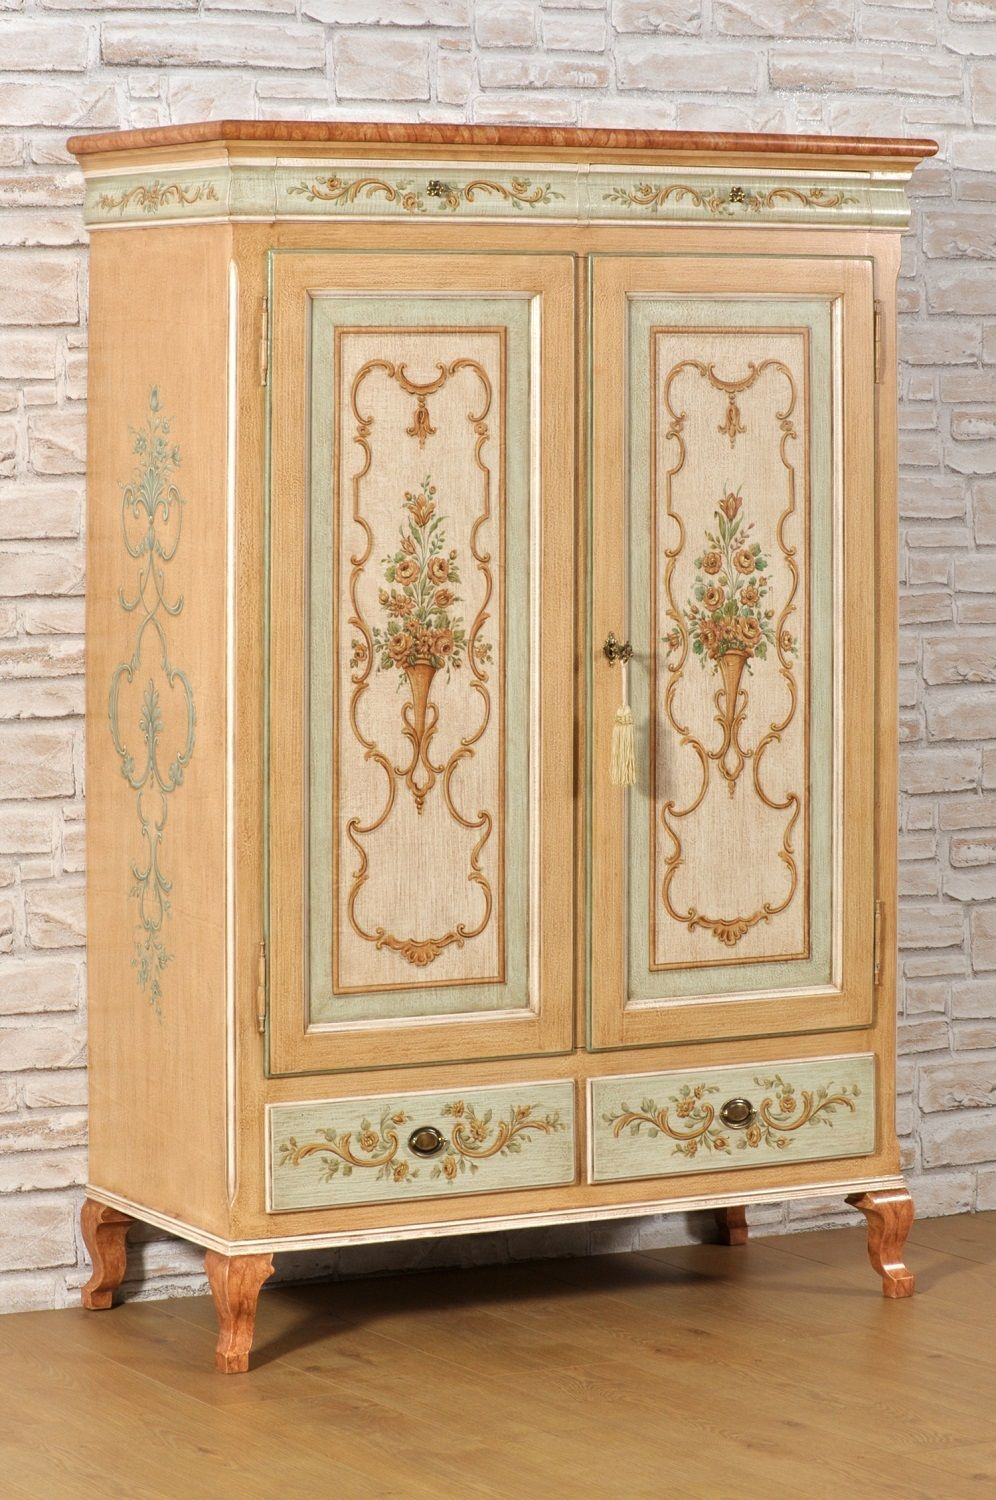 Armadi Classici Decorati.Armadio Decorato In Stile Barocco 700 Veneziano Dispensa